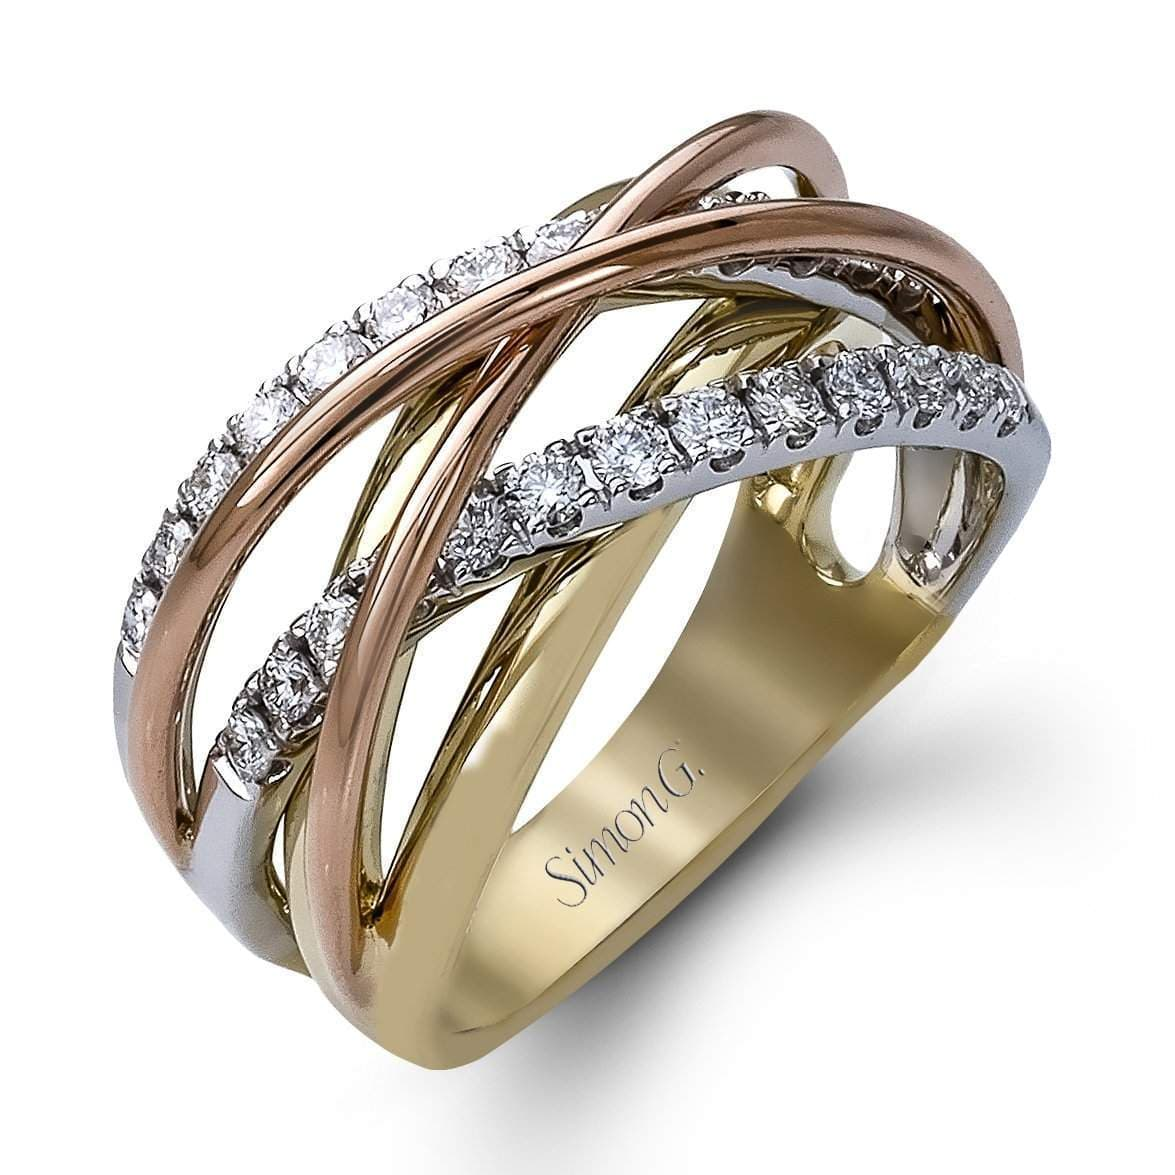 18k White, Yellow & Rose Gold 4 Strand Fashion Fable Ring - MR1854-WYR-Simon G.-Renee Taylor Gallery